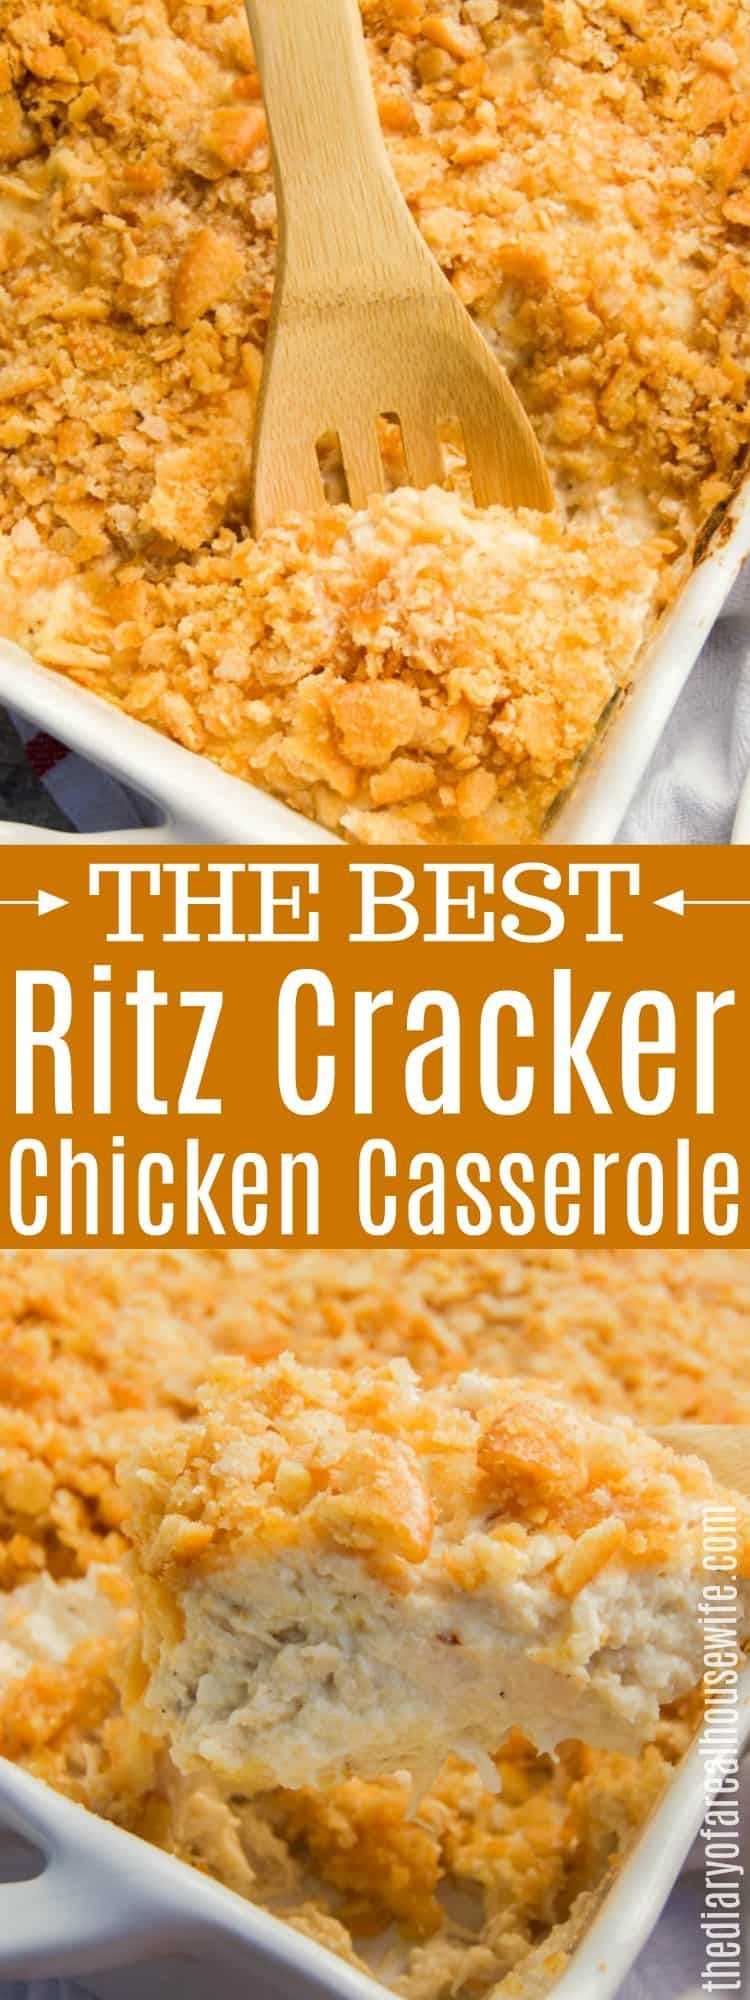 Ritz Cracker Chicken Casserole Chicken Casserole Easy Ritz Cracker Chicken Recipes